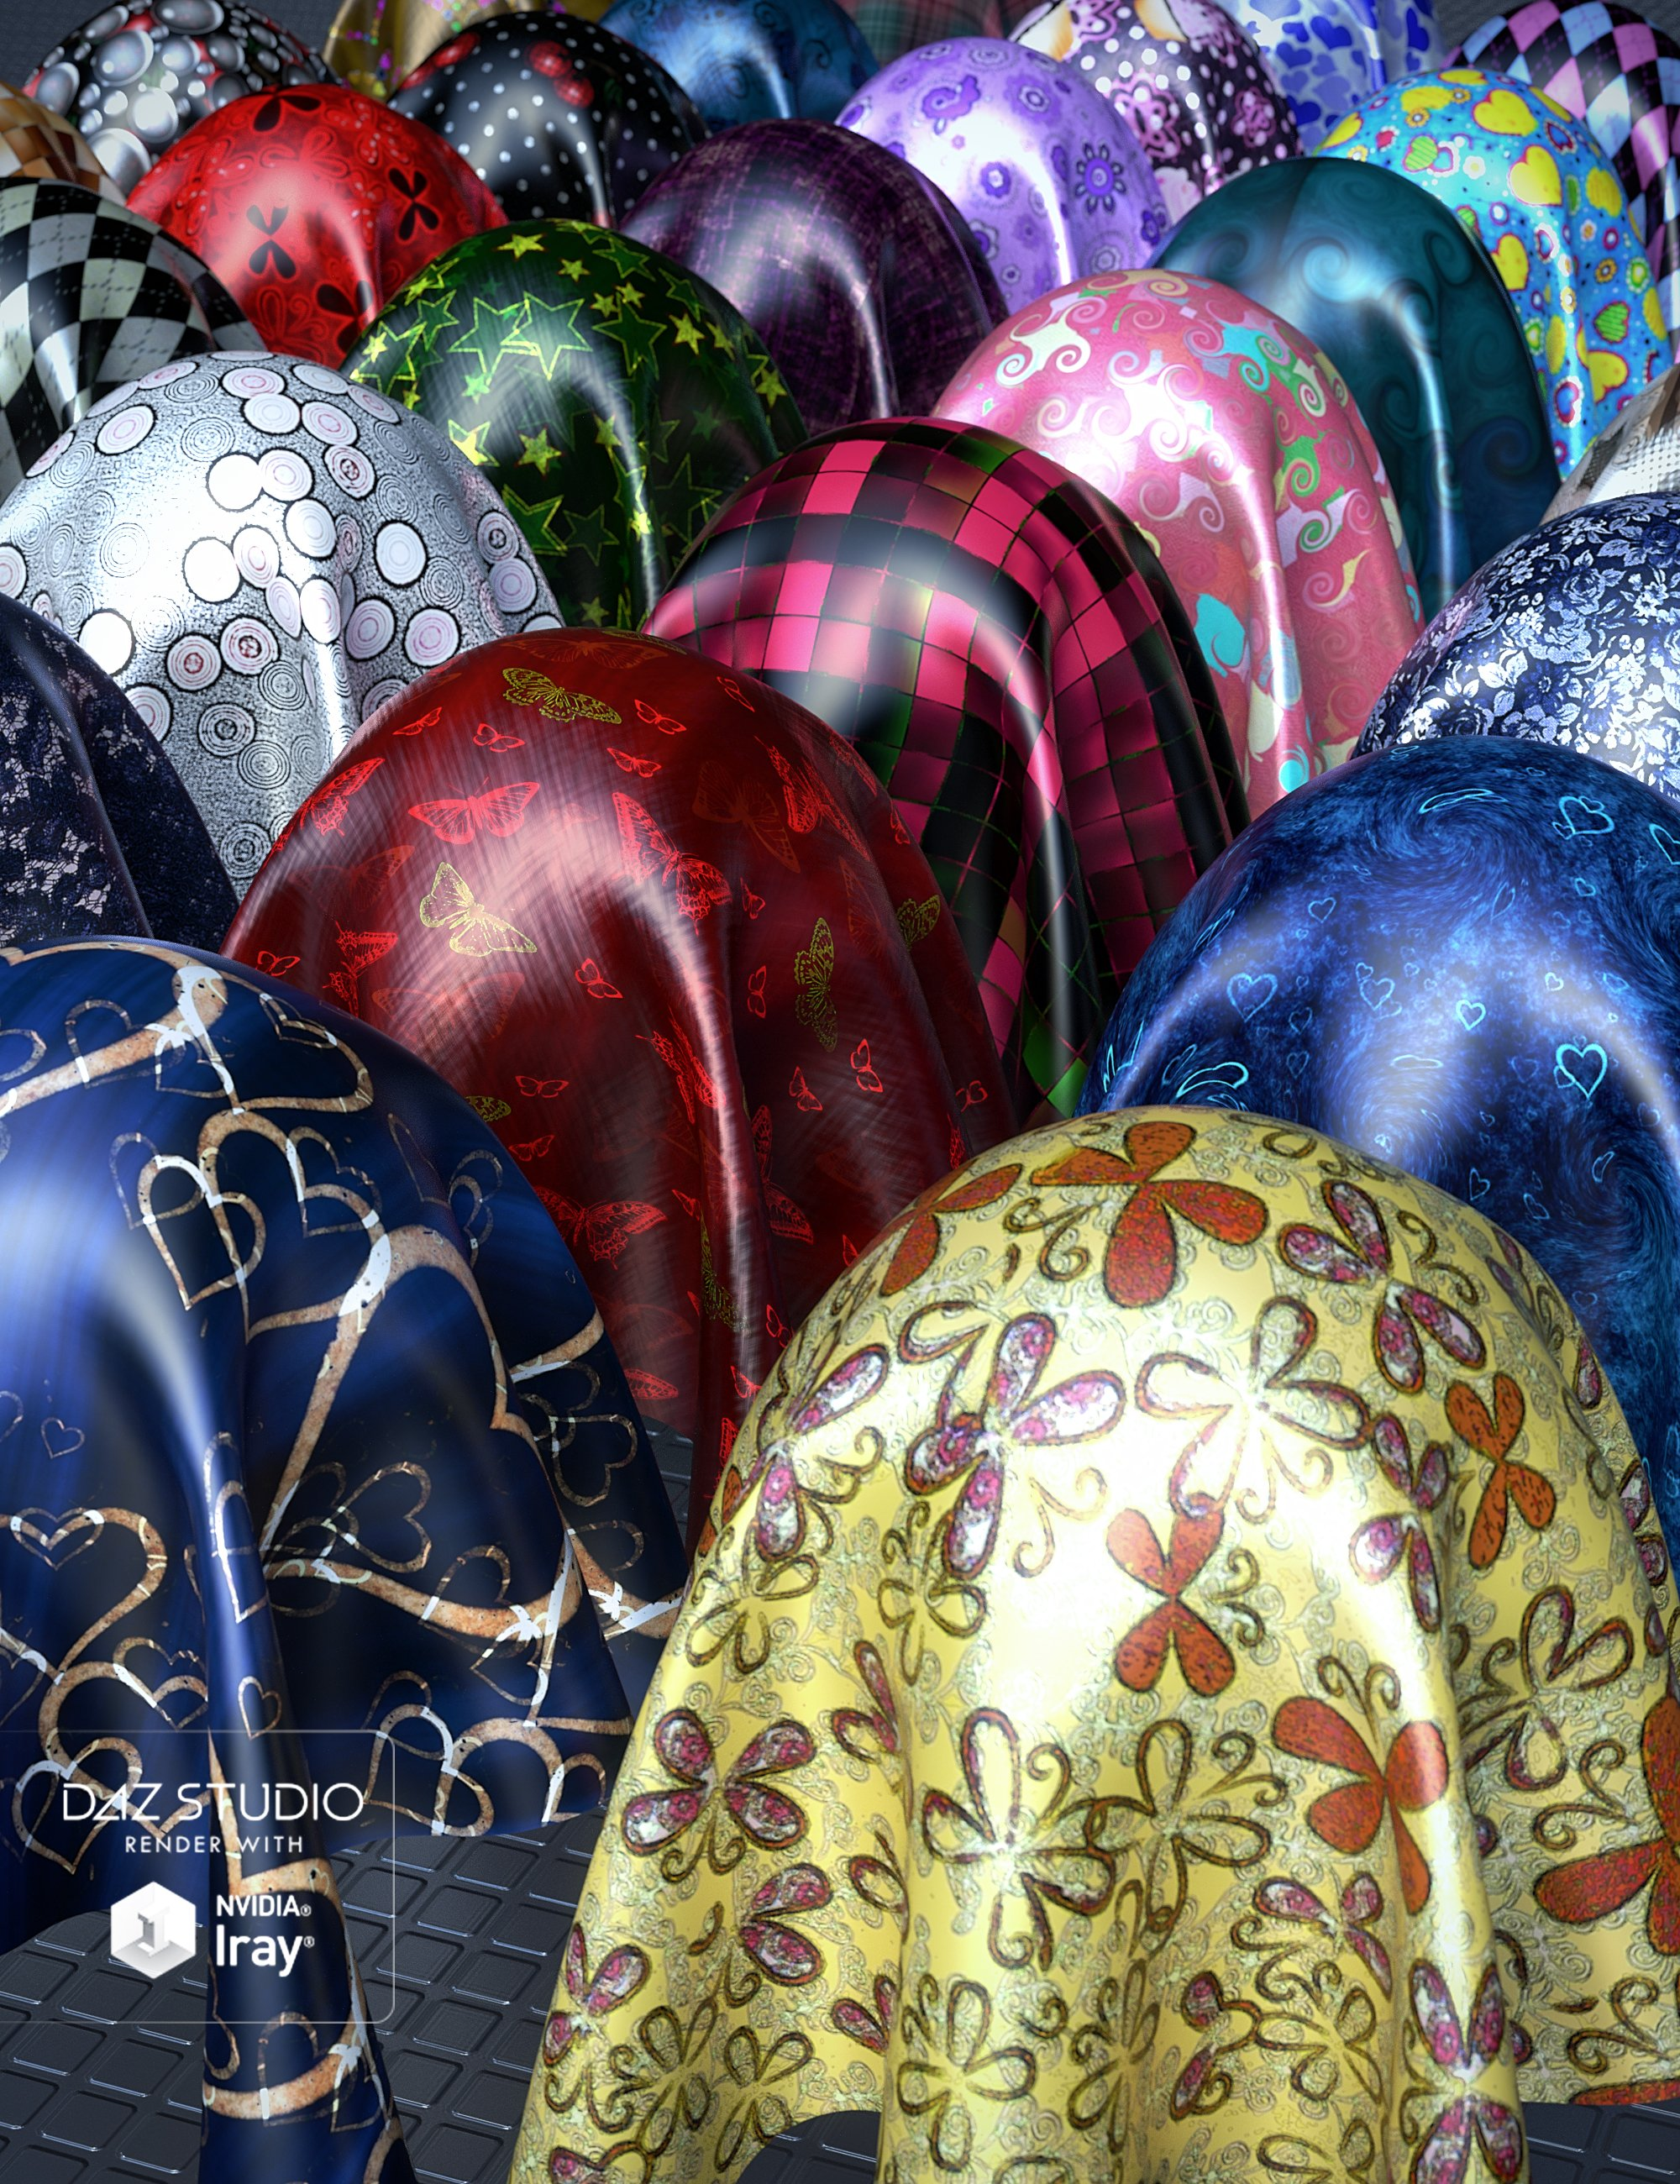 Fun Silk Iray Shaders by: JGreenleesKayjay, 3D Models by Daz 3D